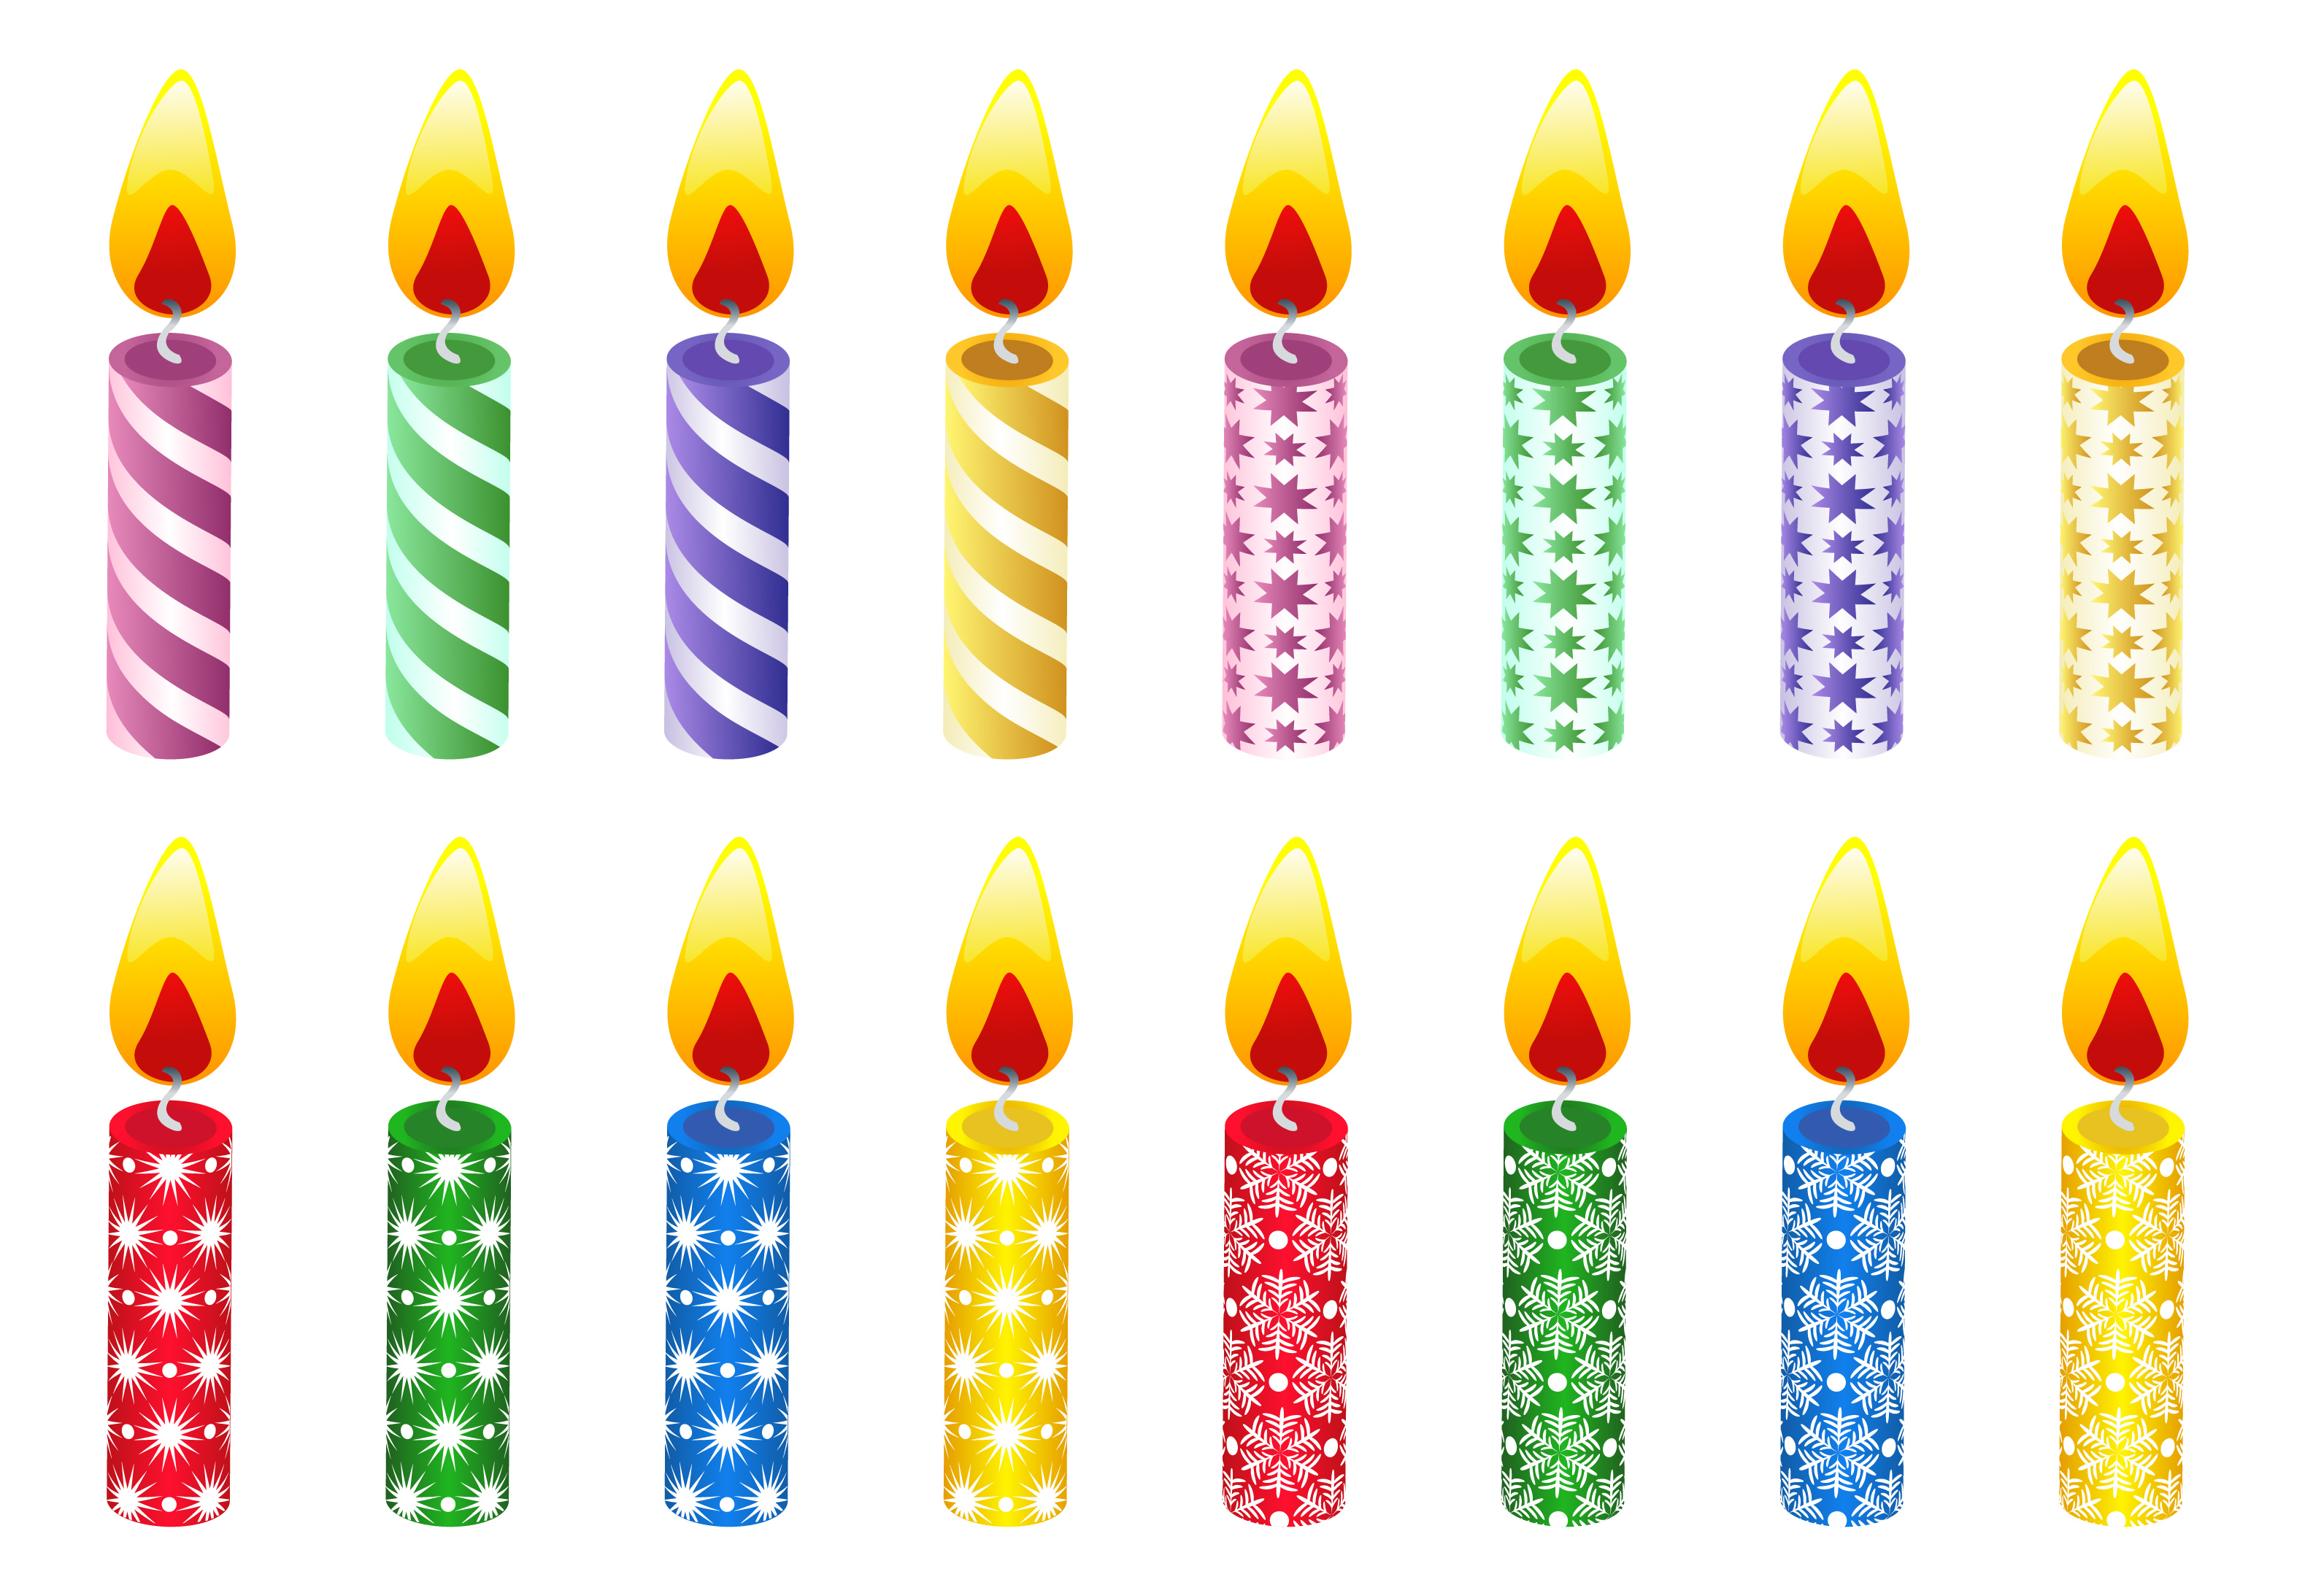 This Is A Great Set Of Birthday Candles -This Is A Great Set Of Birthday Candles To Use For Games Or Classroom-18